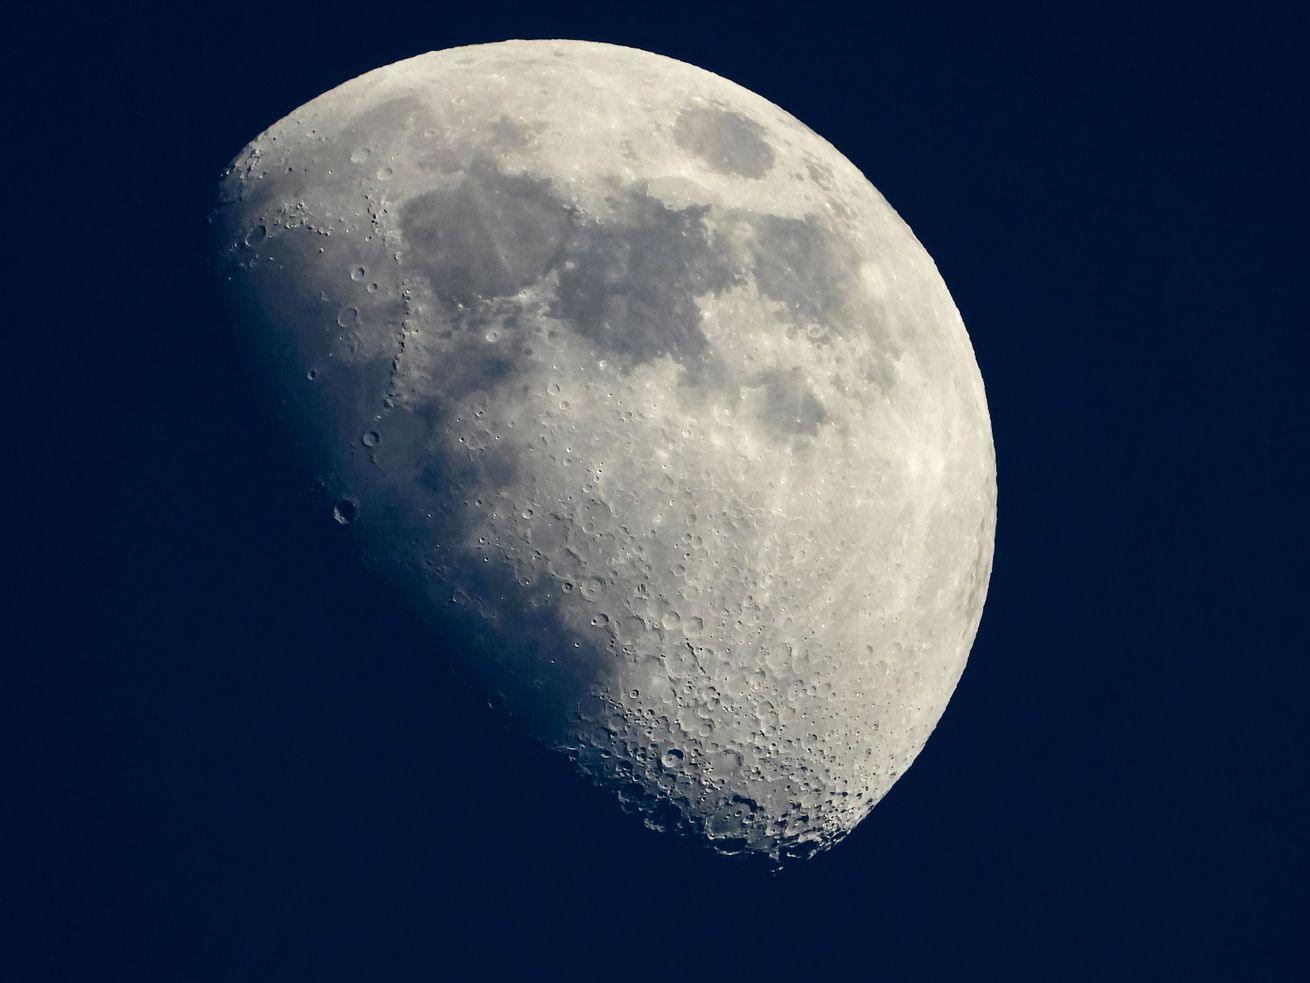 The moon, it beckons.